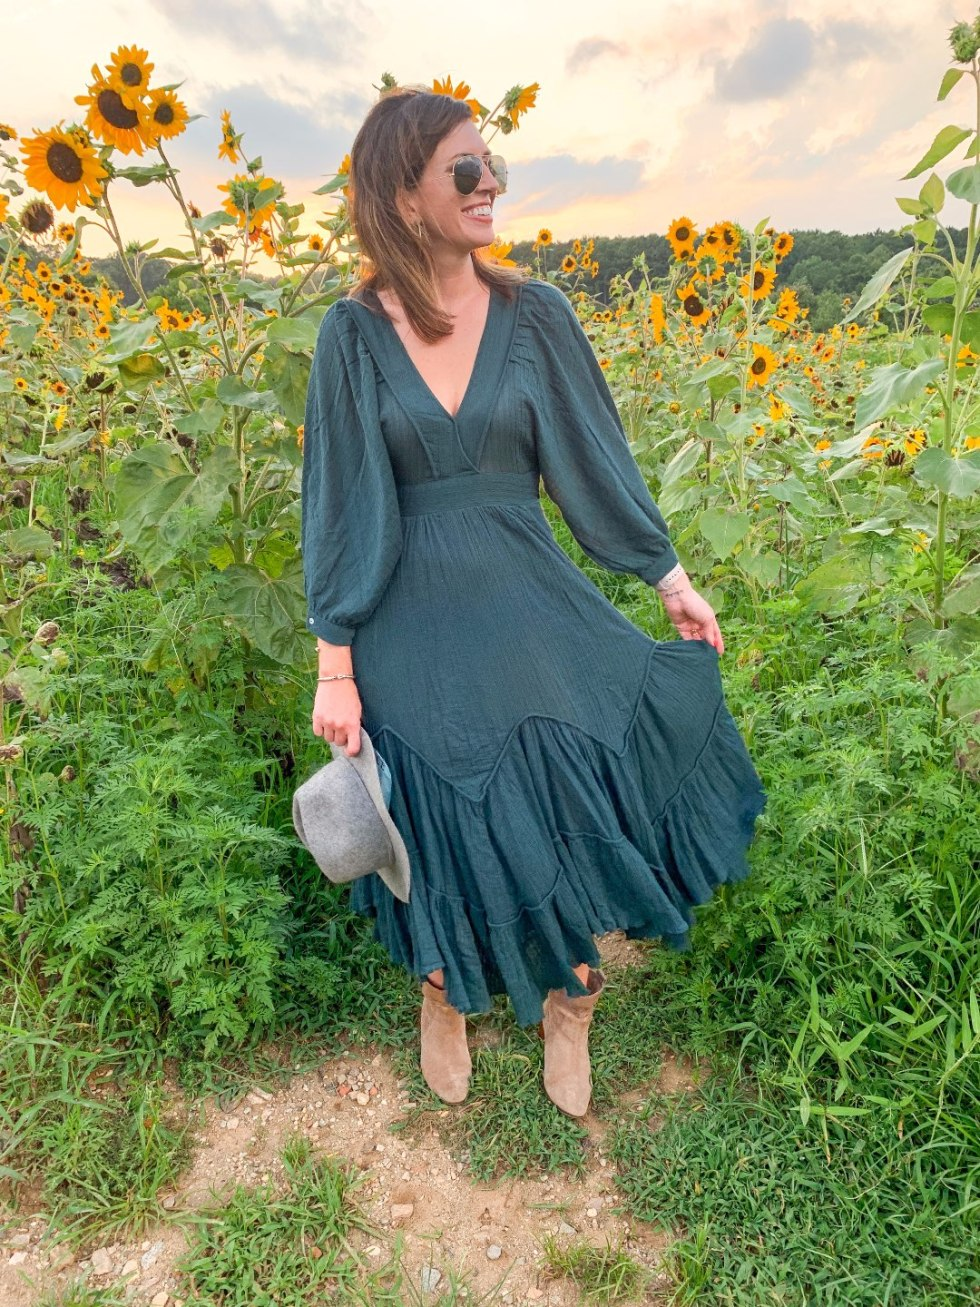 August Instagram Roundup featured by top US life and style blog, I'm Fixin' To | Welcome September + August 2019 Instagram Roundup - I'm Fixin' To - @mbg0112